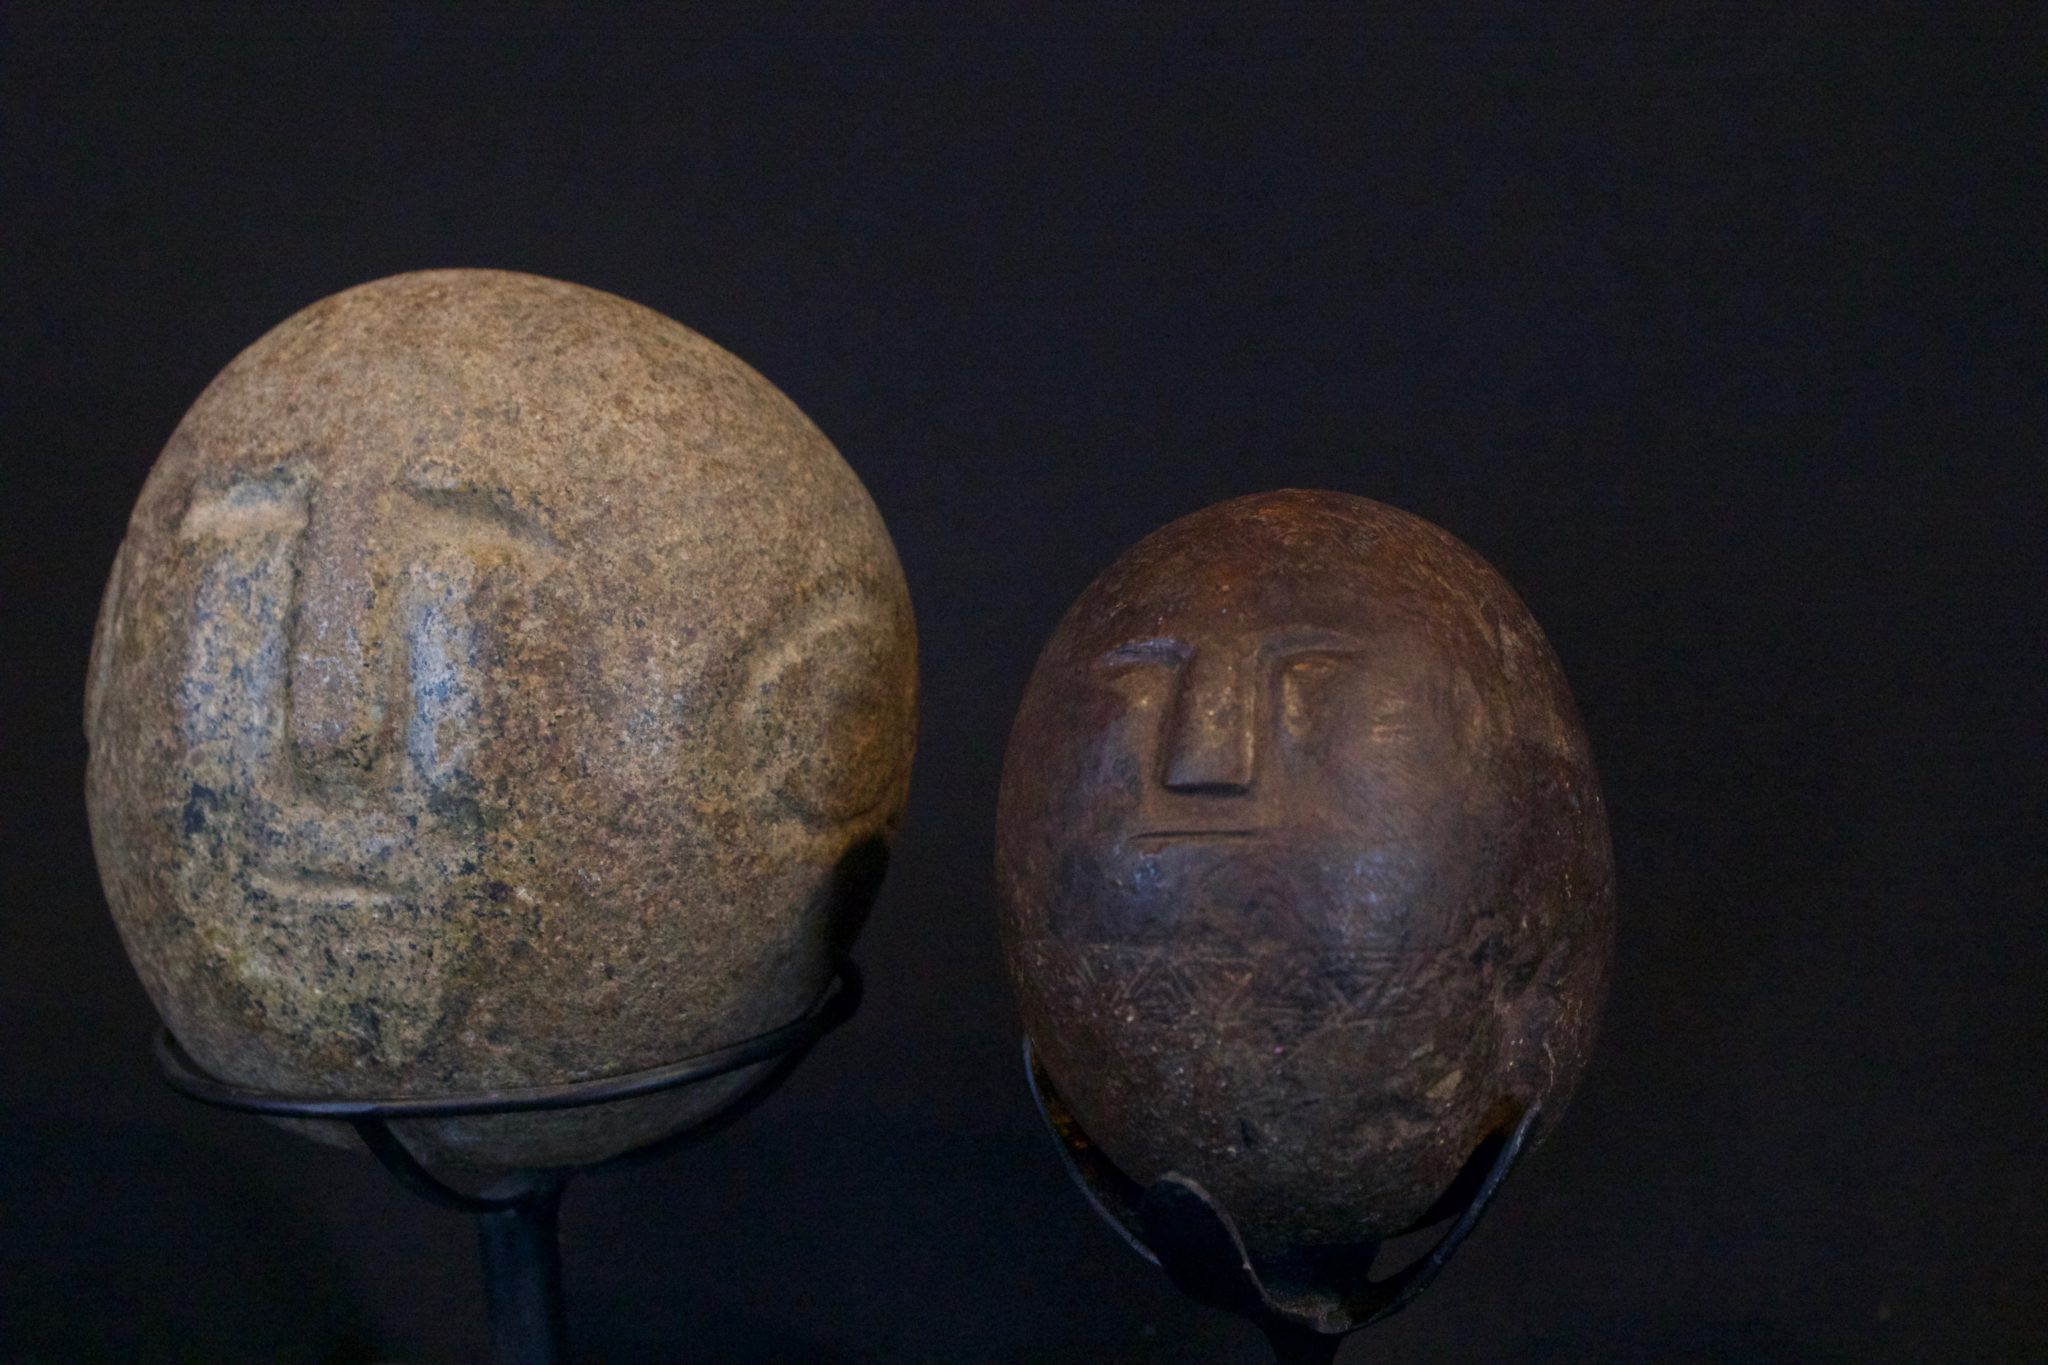 """Healing Figures, Timor Island, Lesser Sunda Islands, Indonesia, Mid to late 19th c. Stone, patinated with use and age. Used in healing rituals. (left - late 19th c, 3 ¾"""" x 2 ¾"""" x 3 ¼"""", sold); (right - mid 19th c, 3 ¾"""" x 2 ¾"""" x 3 ¼"""", sold)"""